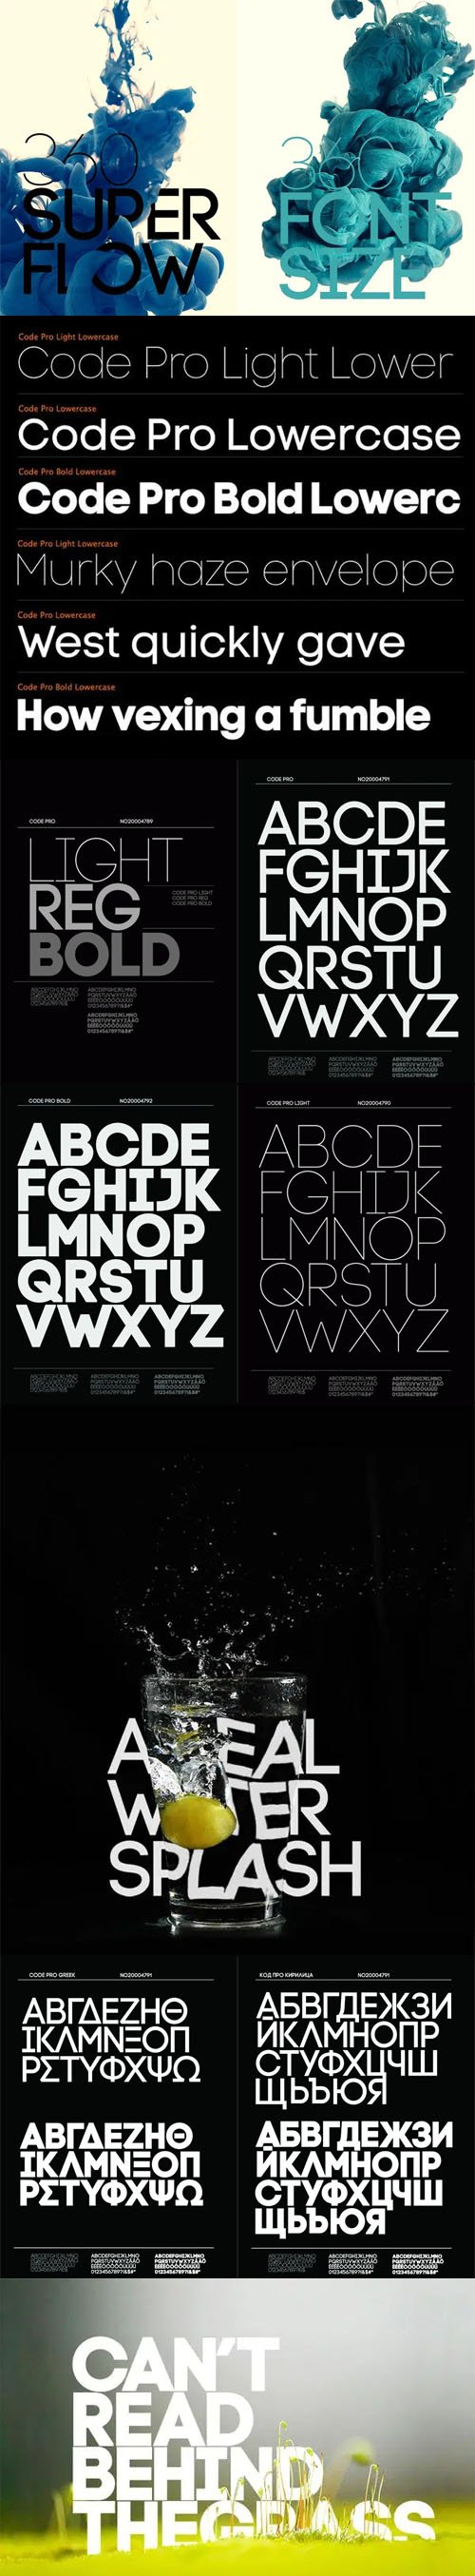 Code Pro Sans Serif Font Family [10-Weights]